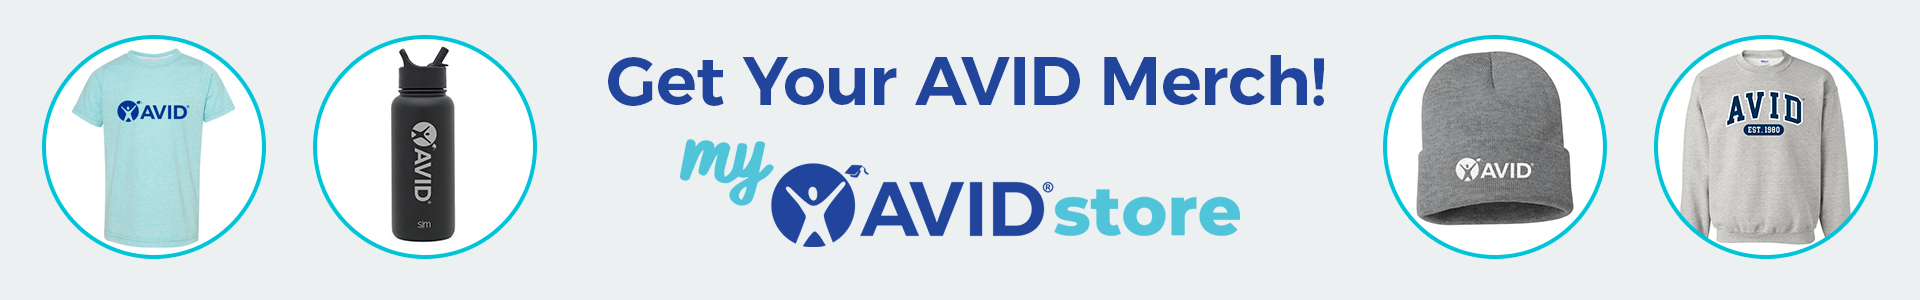 Shop the AVID Store